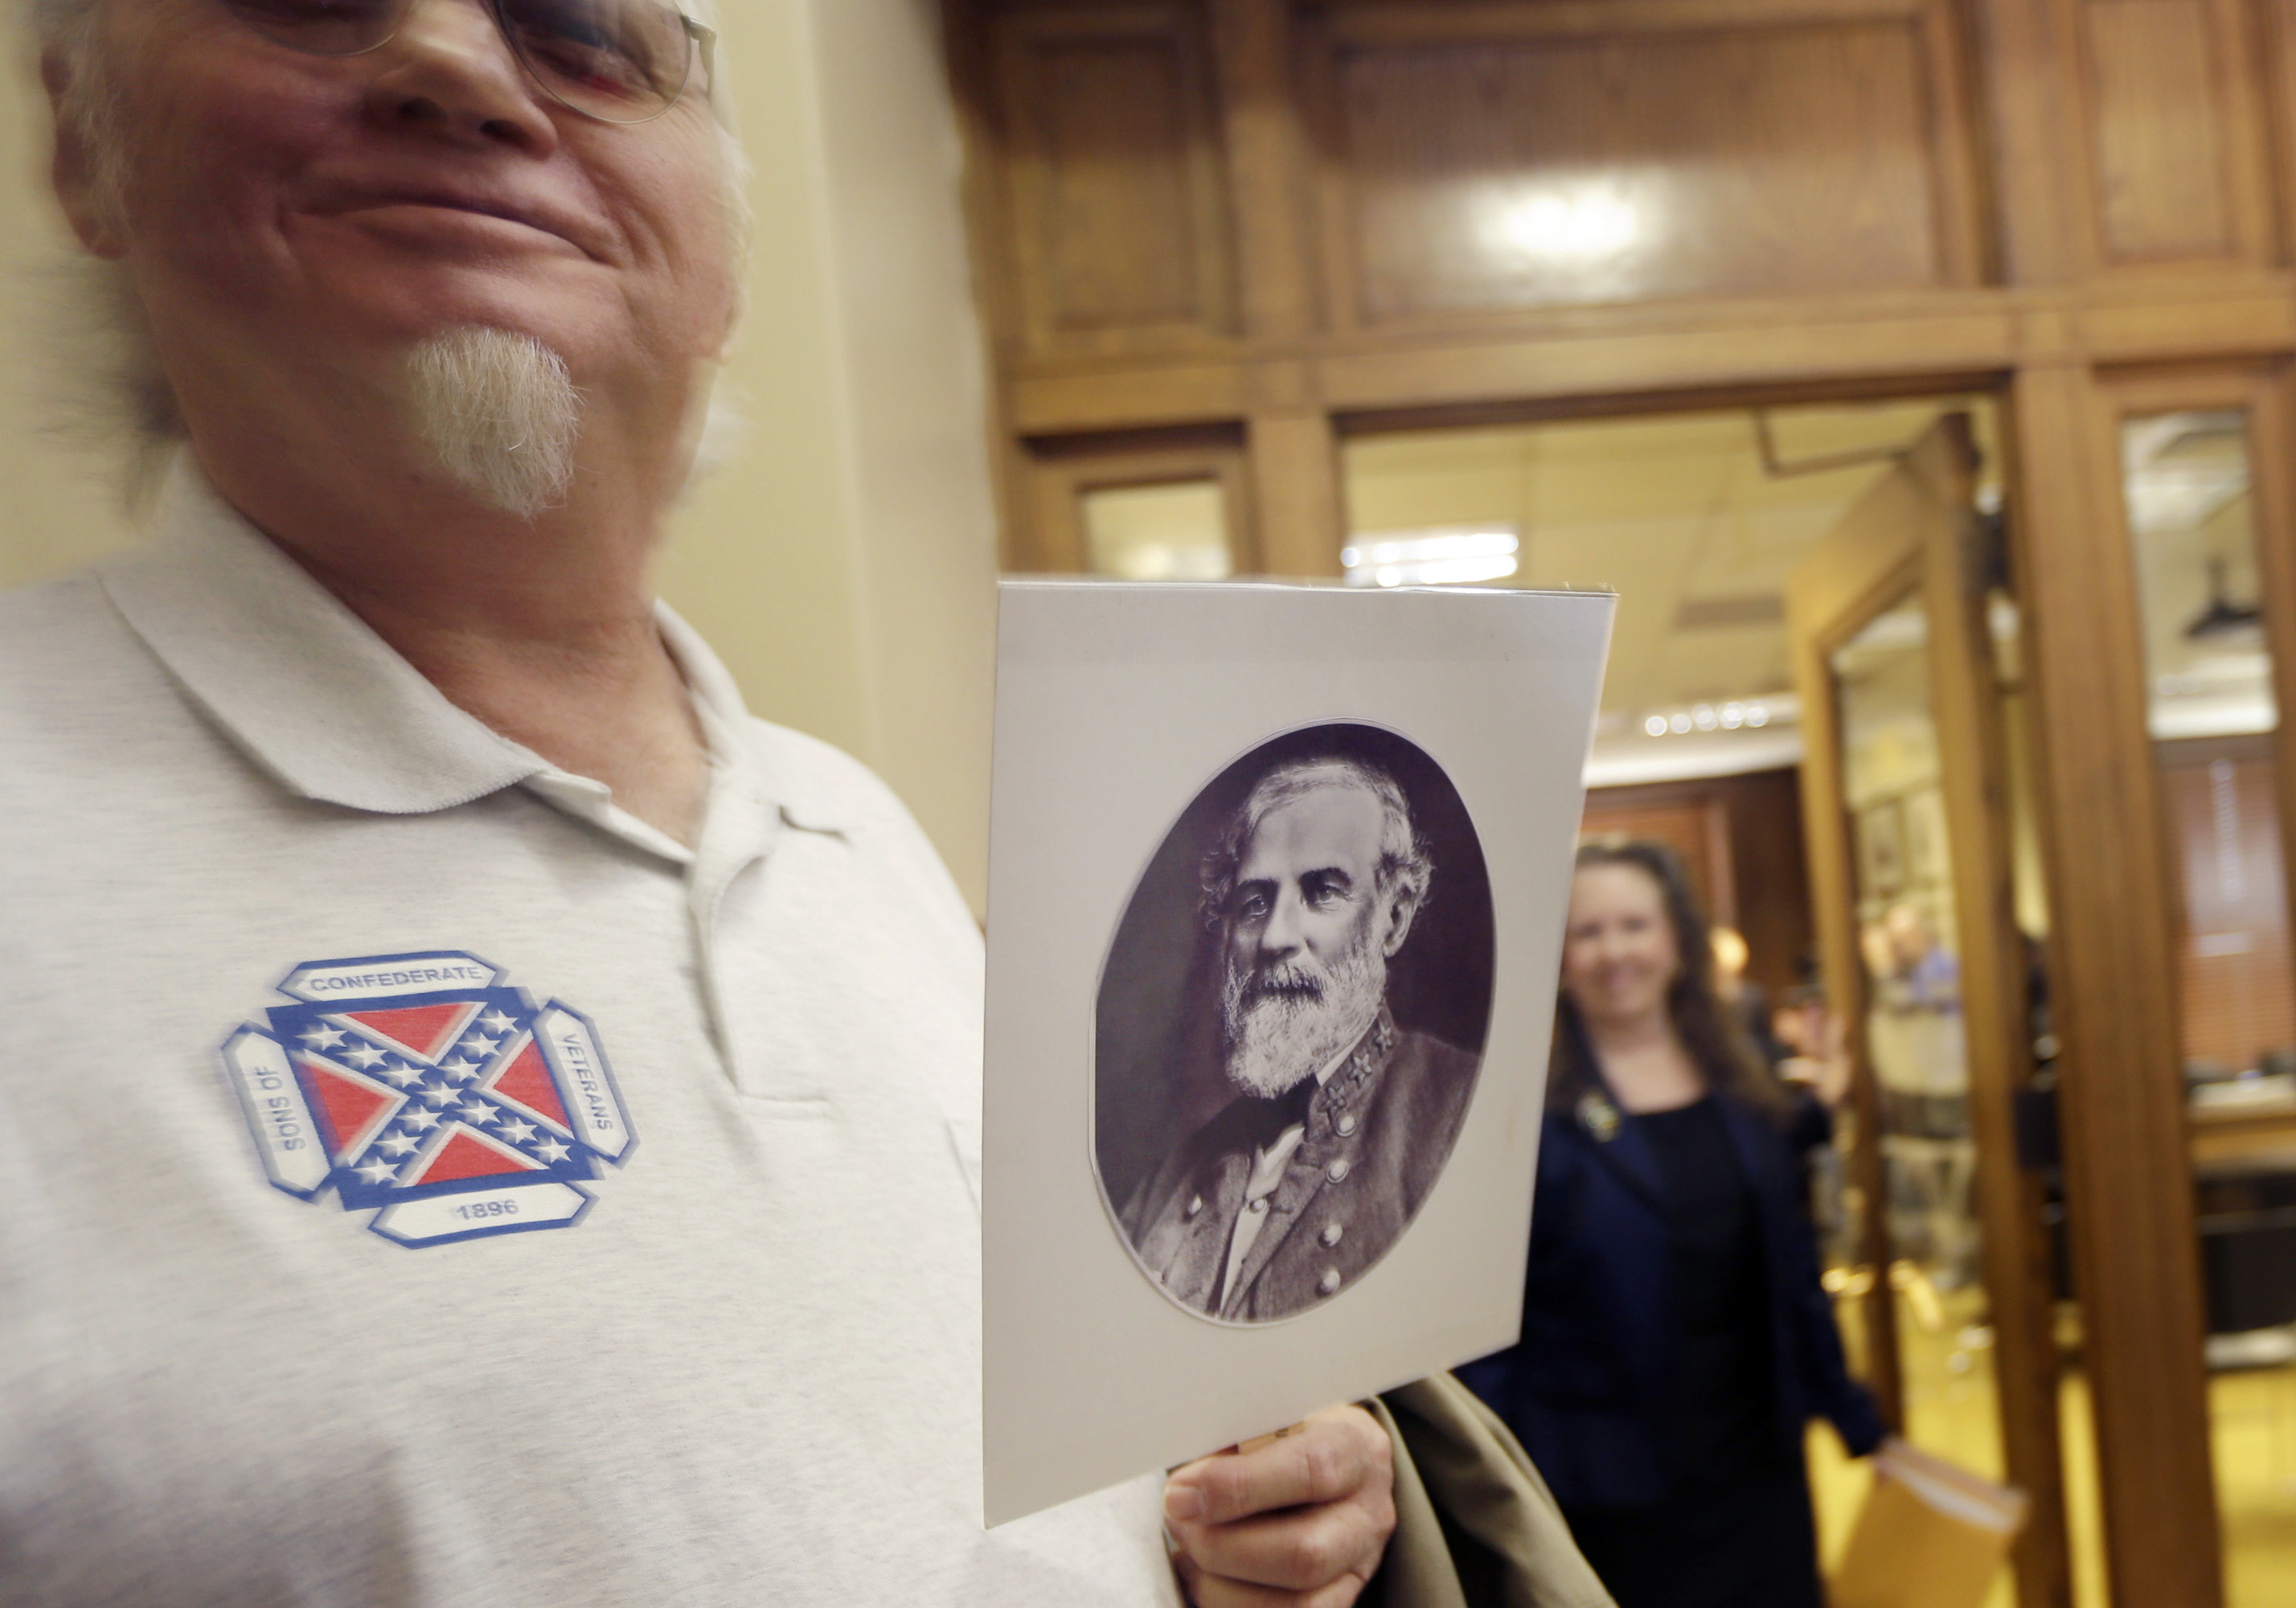 Dewey Spencer, of Judsonia, Ark., holds a portrait of Confederate Gen. Robert E. Lee after a meeting of the House Committee on State Agencies and Governmental Affairs, Wednesday, Jan. 28, 2015, at the State Capitol in Little Rock, Ark.